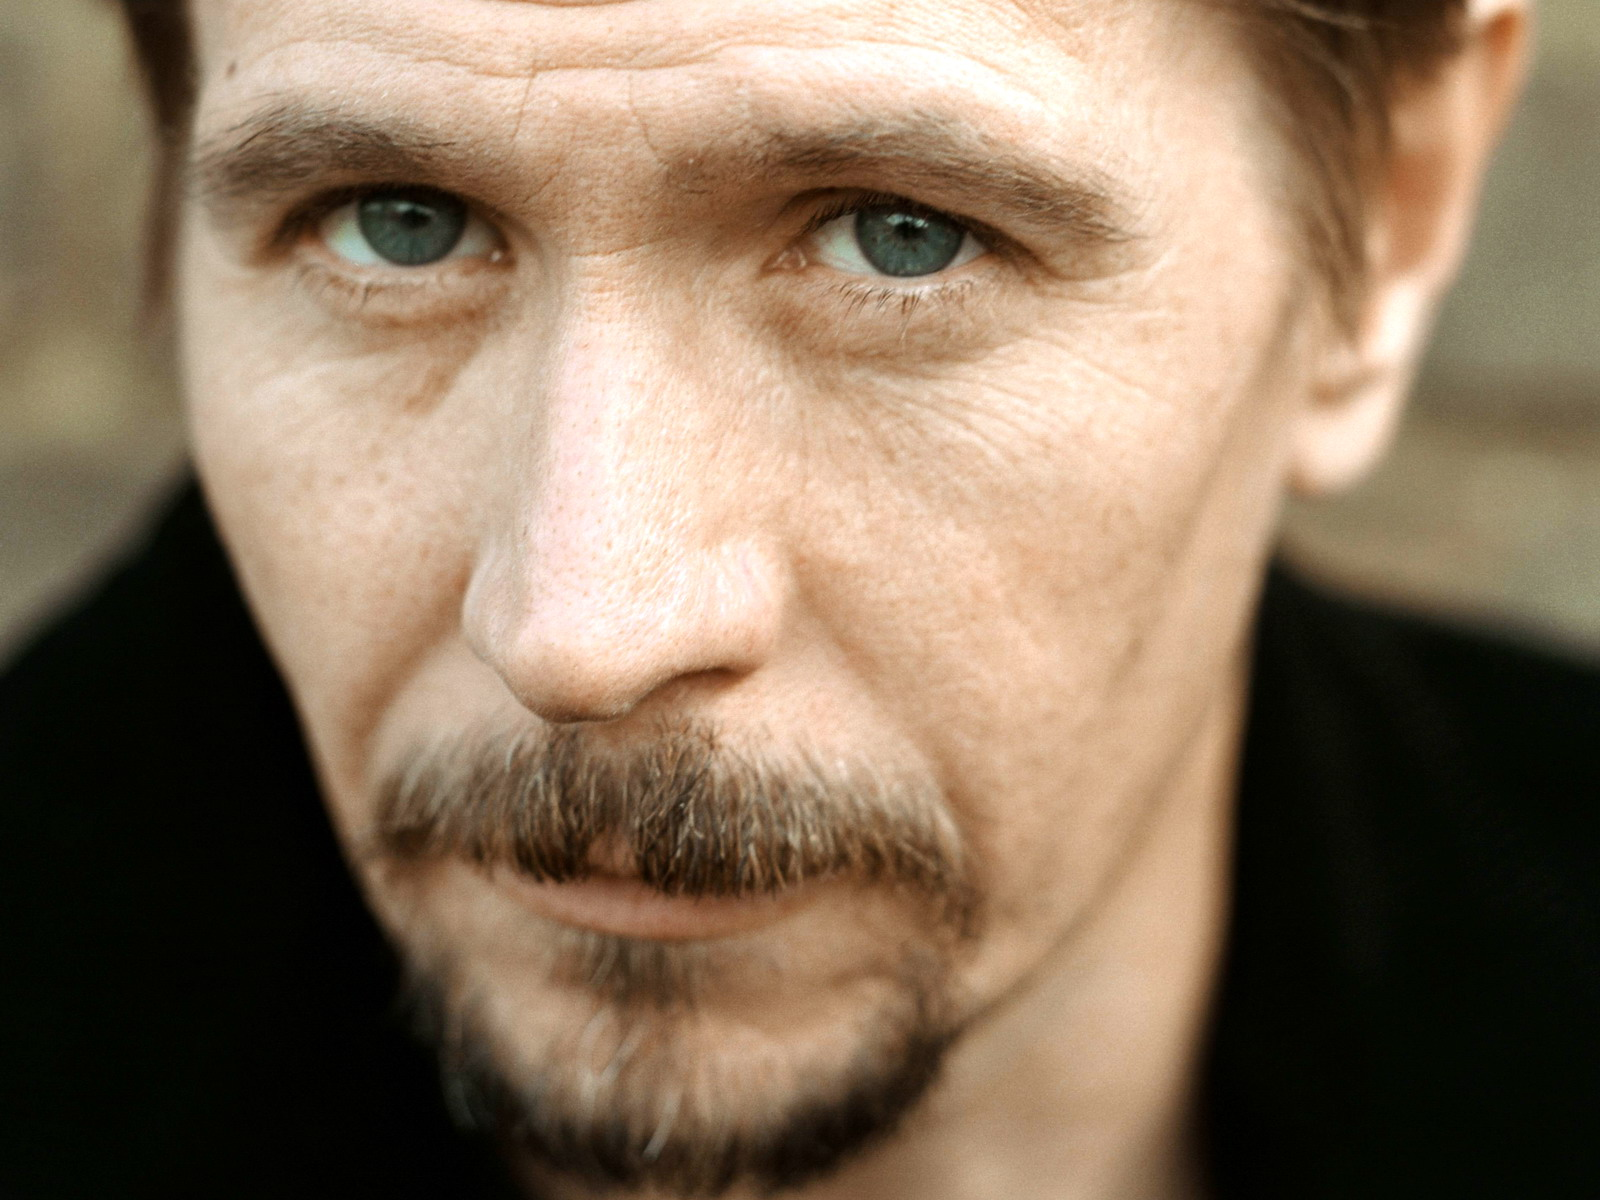 http://alkhallanonymous.files.wordpress.com/2013/11/used-2013-11-08-gary-oldman-alkhall-celebriety-01.jpg